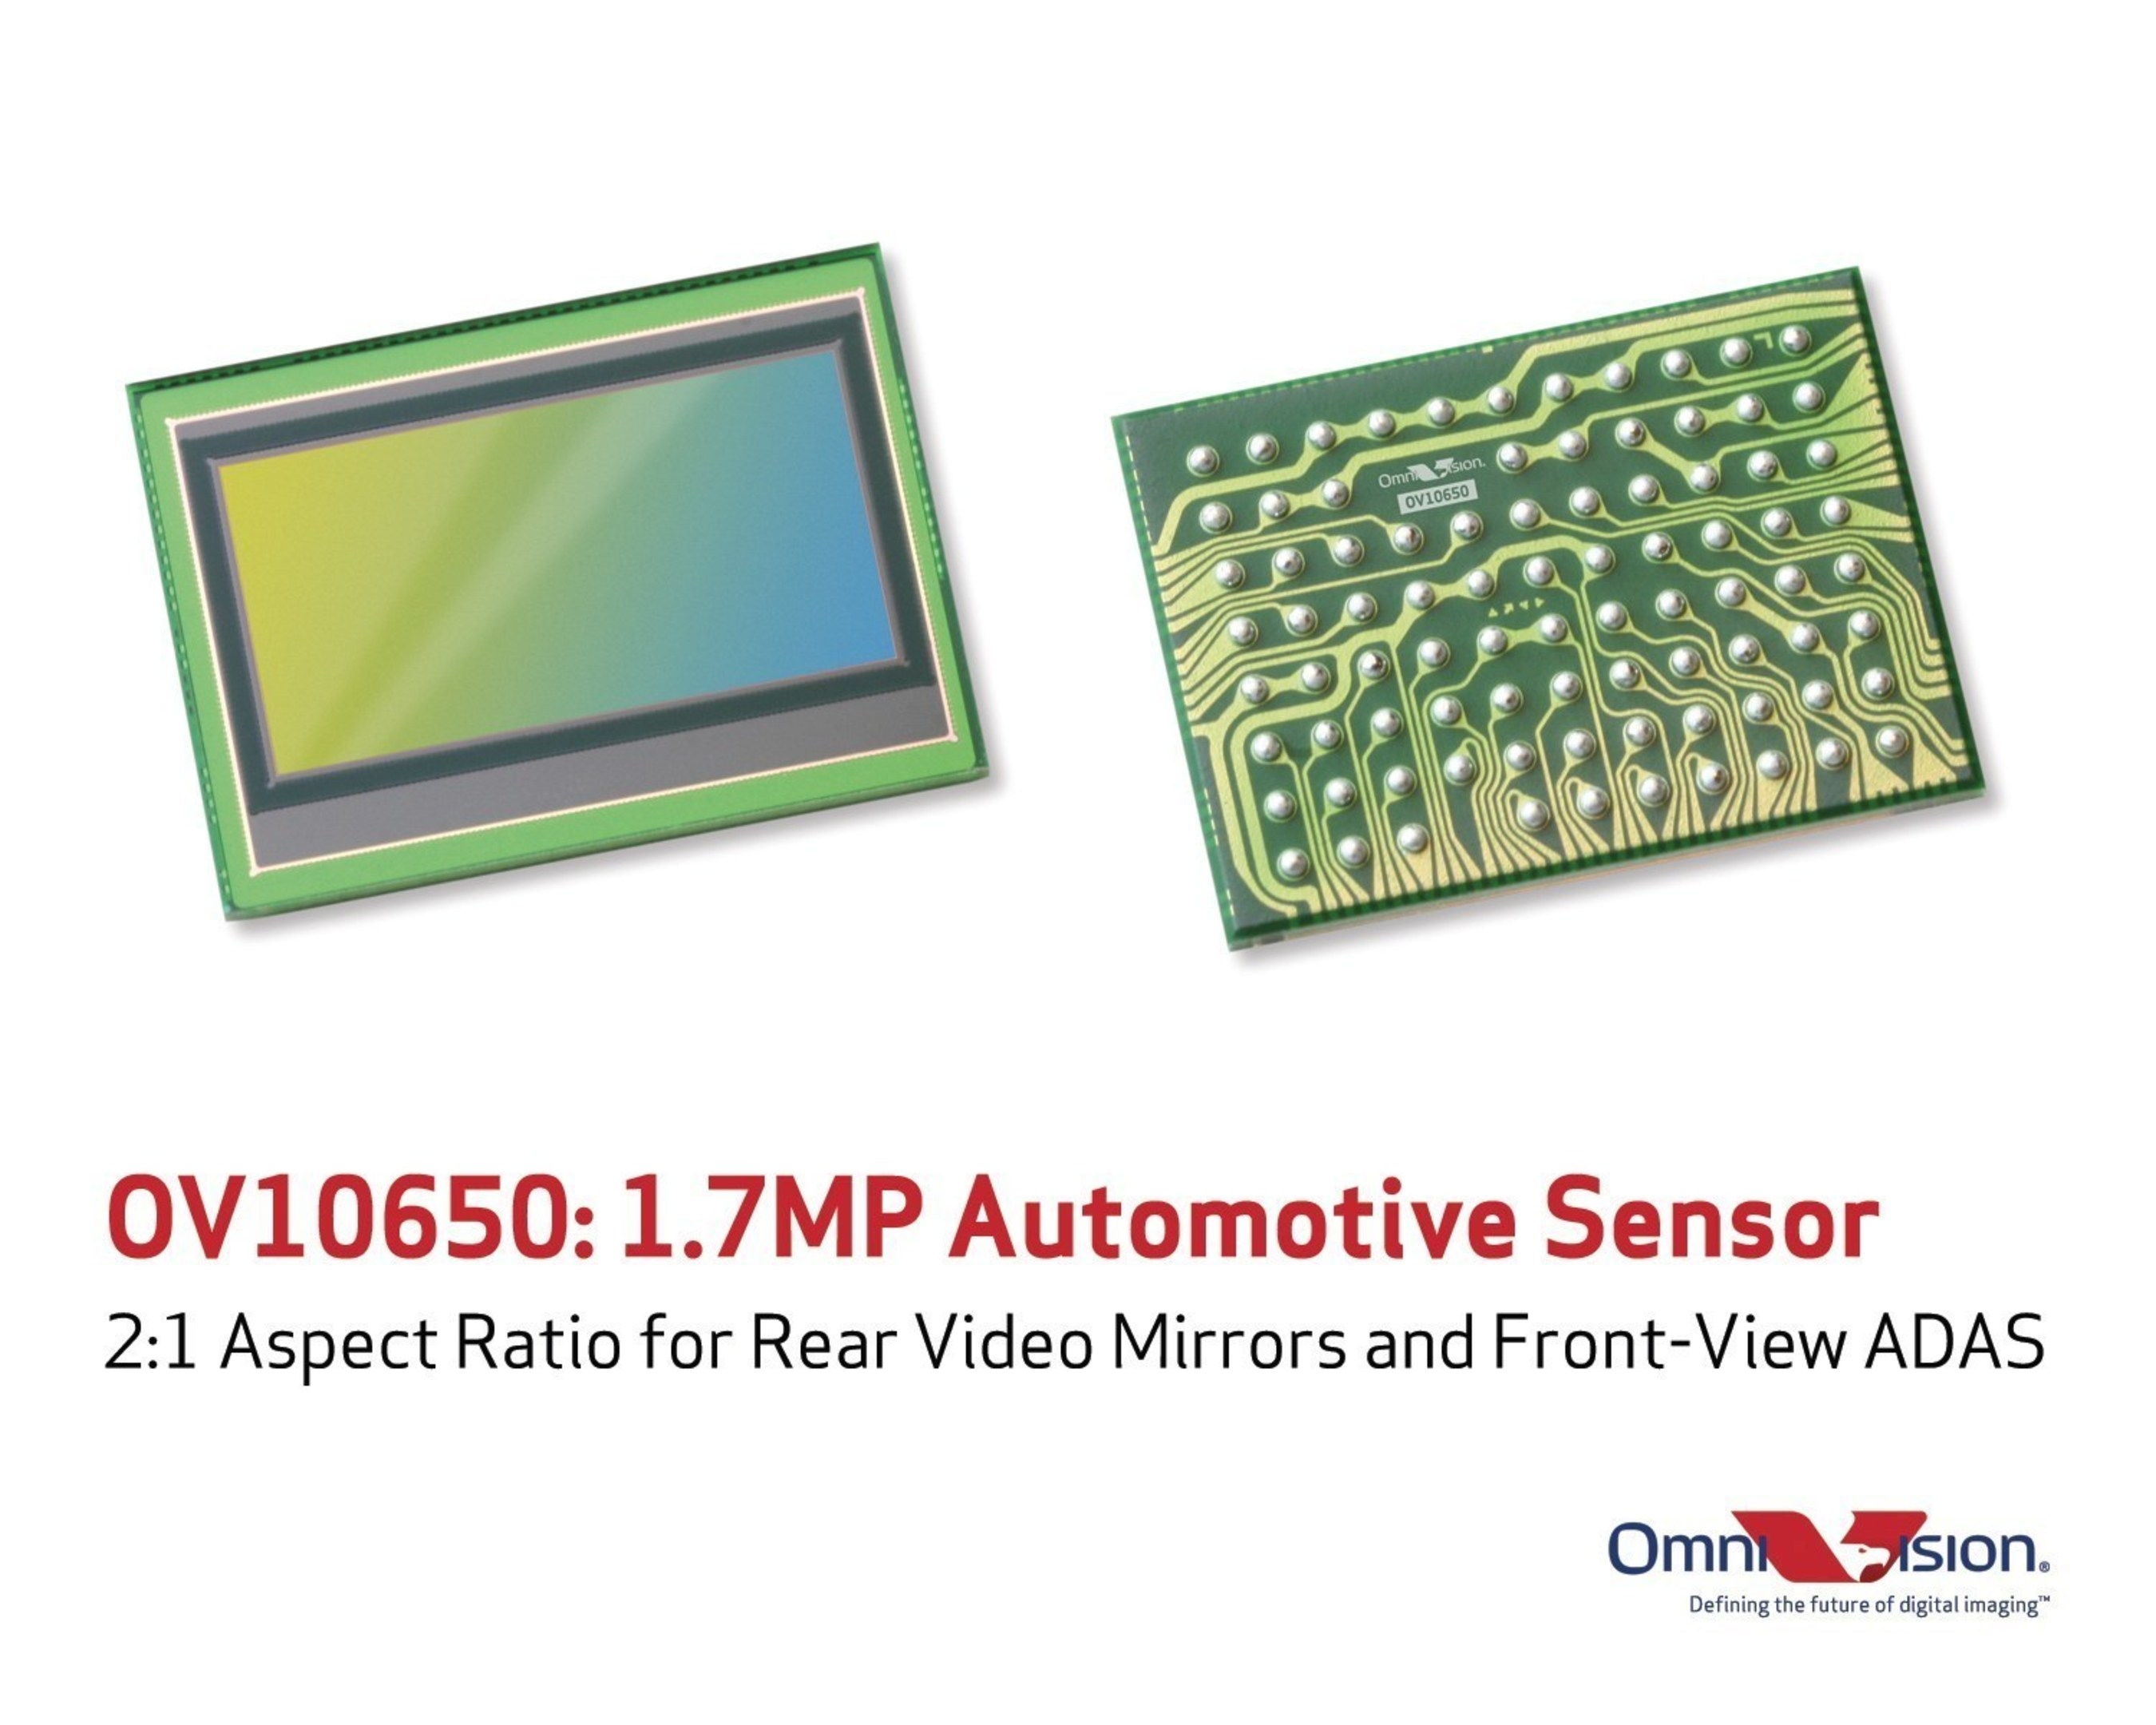 OmniVision's OV10650 is a new wide-format image sensor that captures high quality color images and video in a 2:1 aspect ratio.